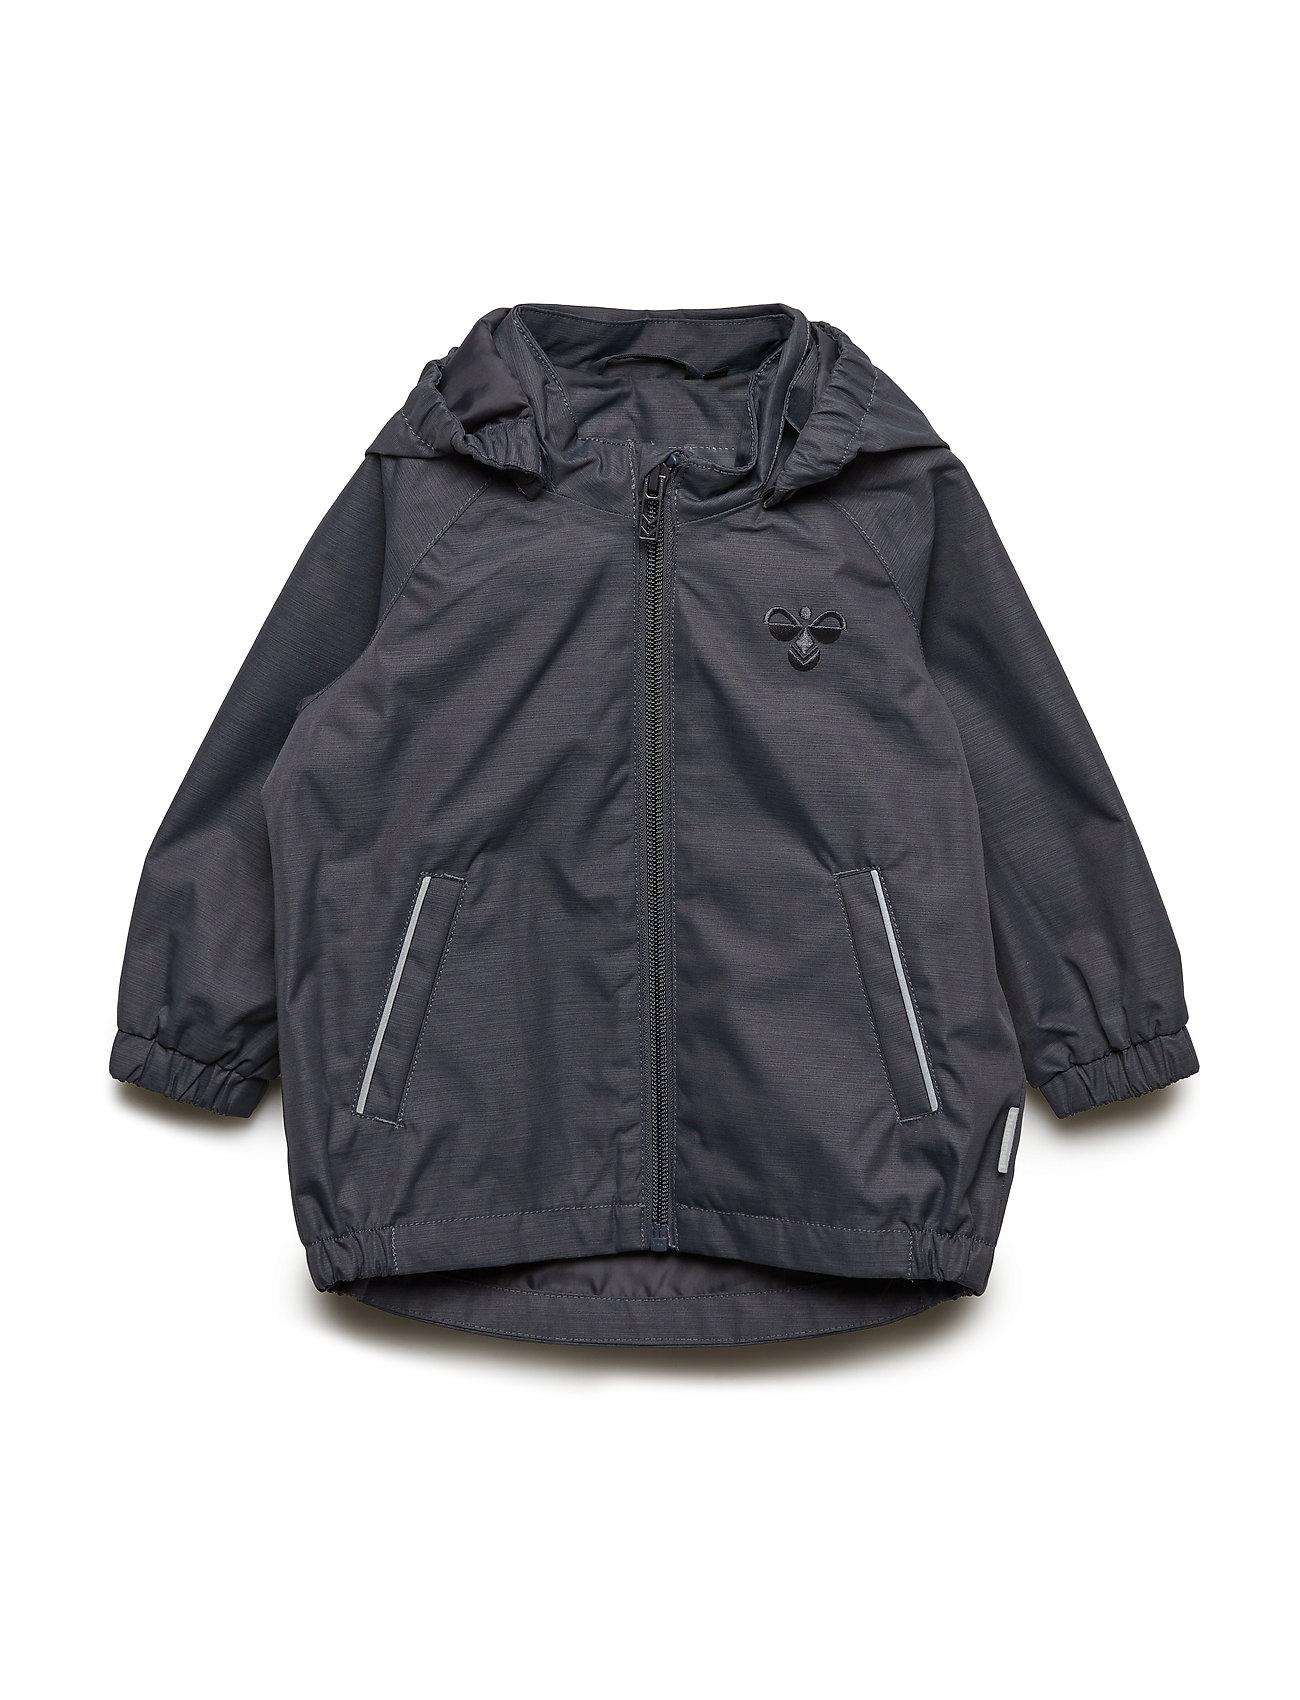 b90c78c5 Hummel Hmlbassa Jacket (Ebony), (44.97 €) | Large selection of ...